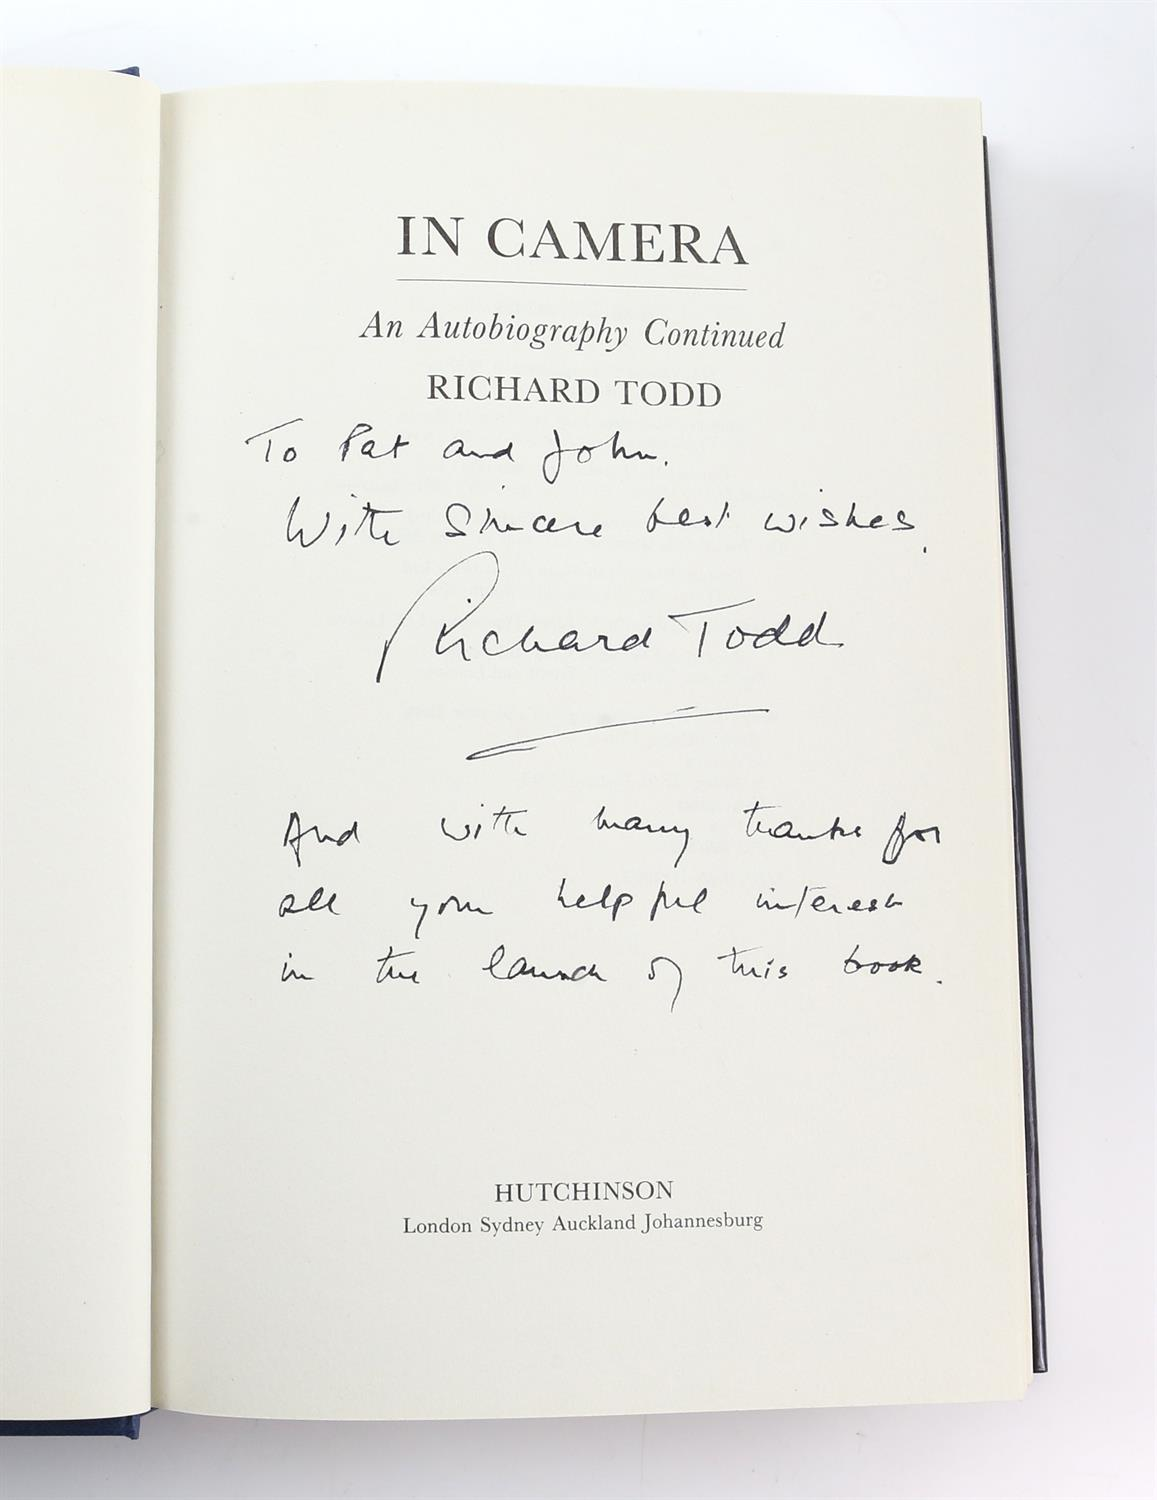 9 autographed books signed by Lauren Bacall, Richard Todd, Michael Palin, Leslie Caron, - Image 6 of 10